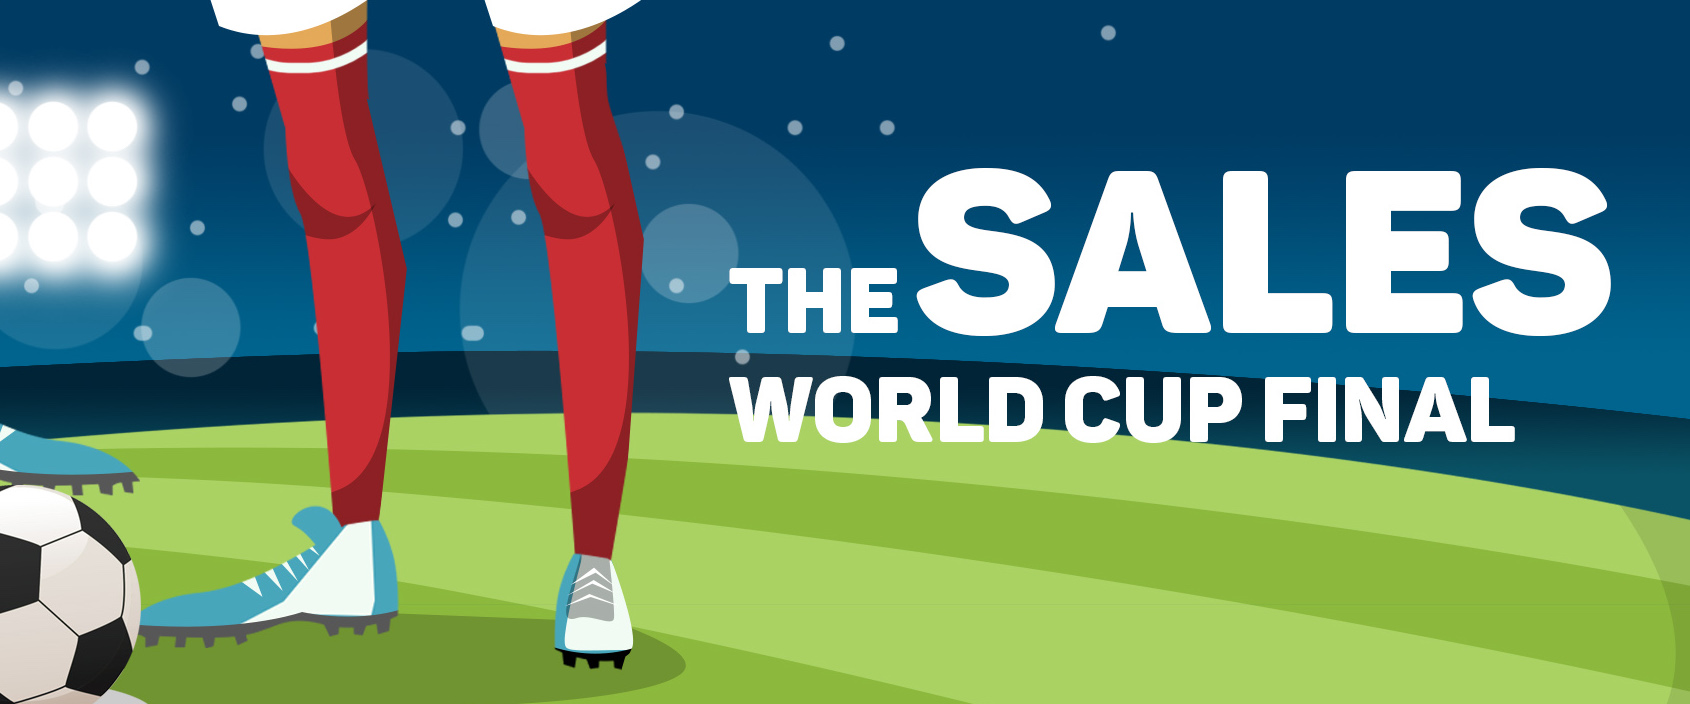 Who Would Win The Sales World Cup Final?